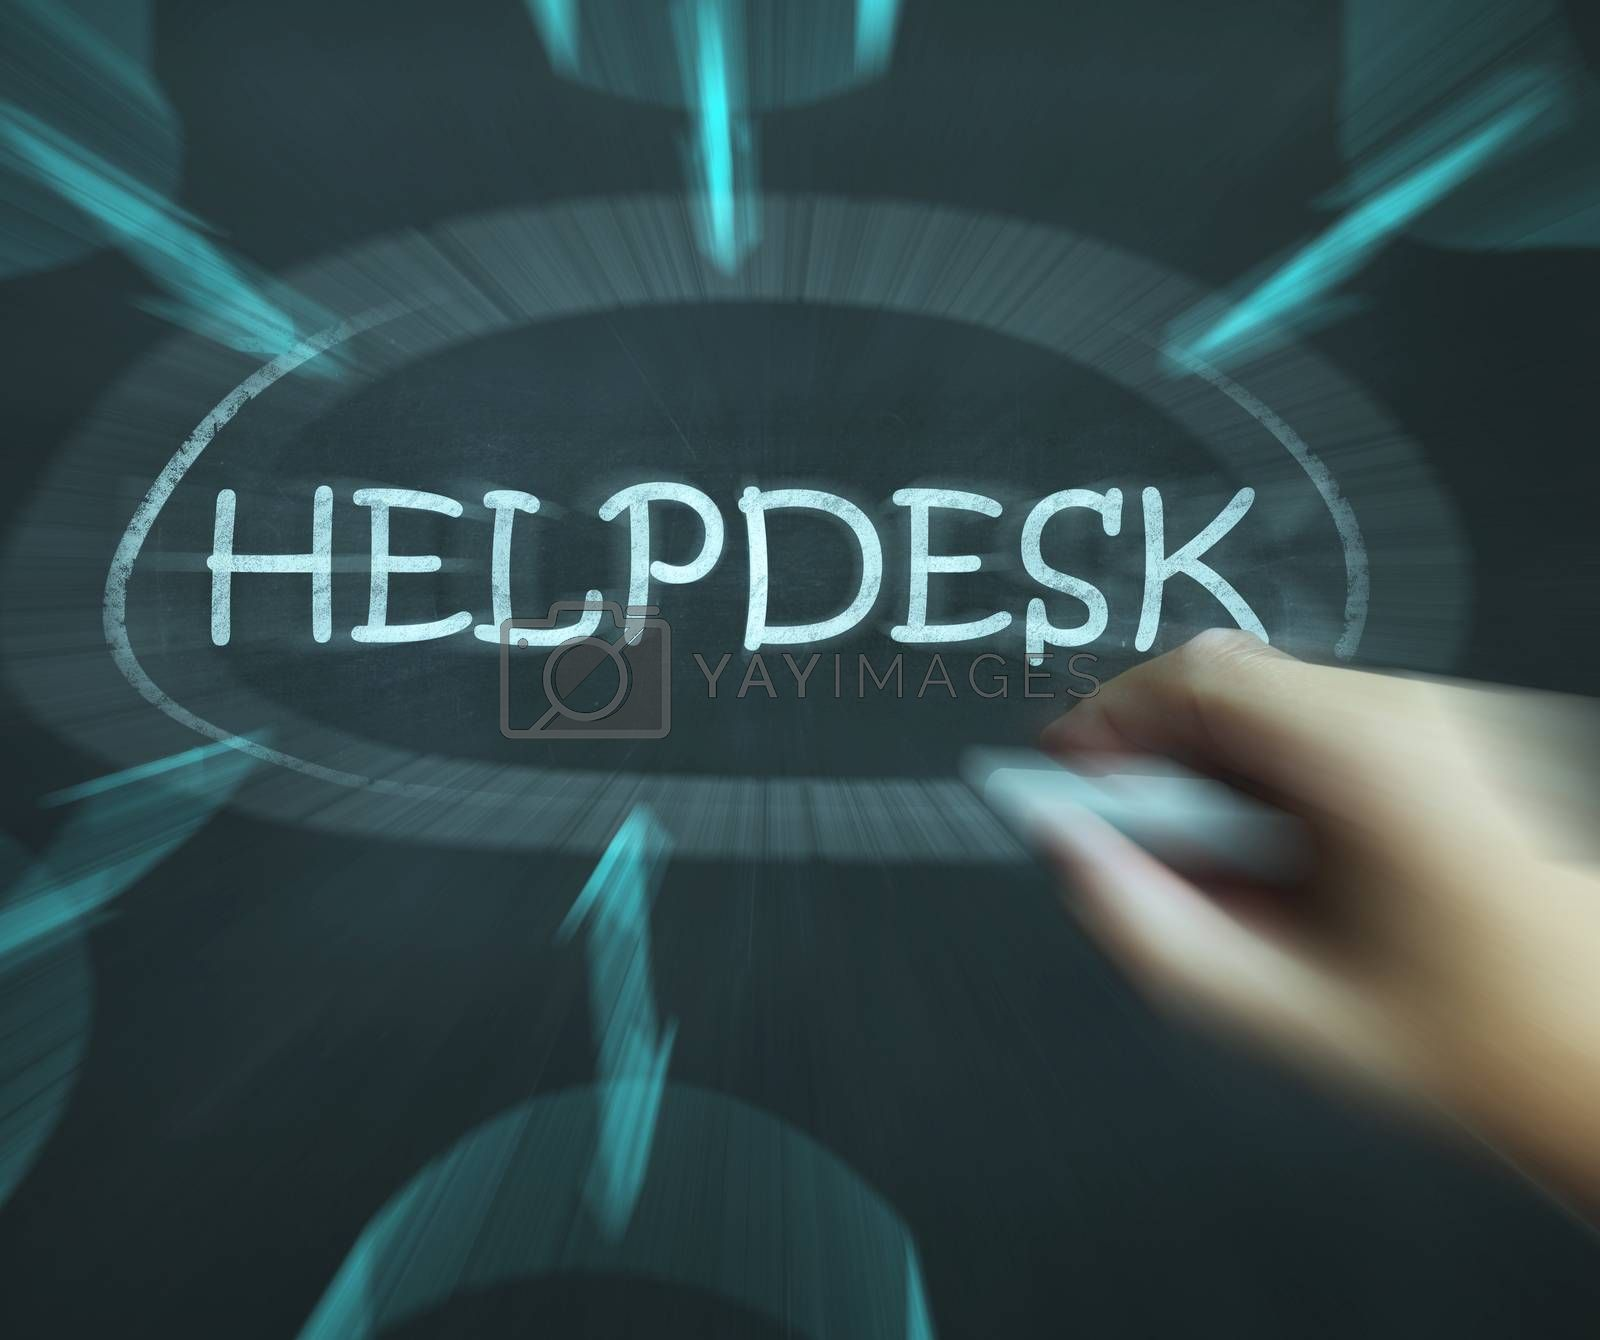 Helpdesk Diagram Shows Support Solutions And Advice by stuartmiles